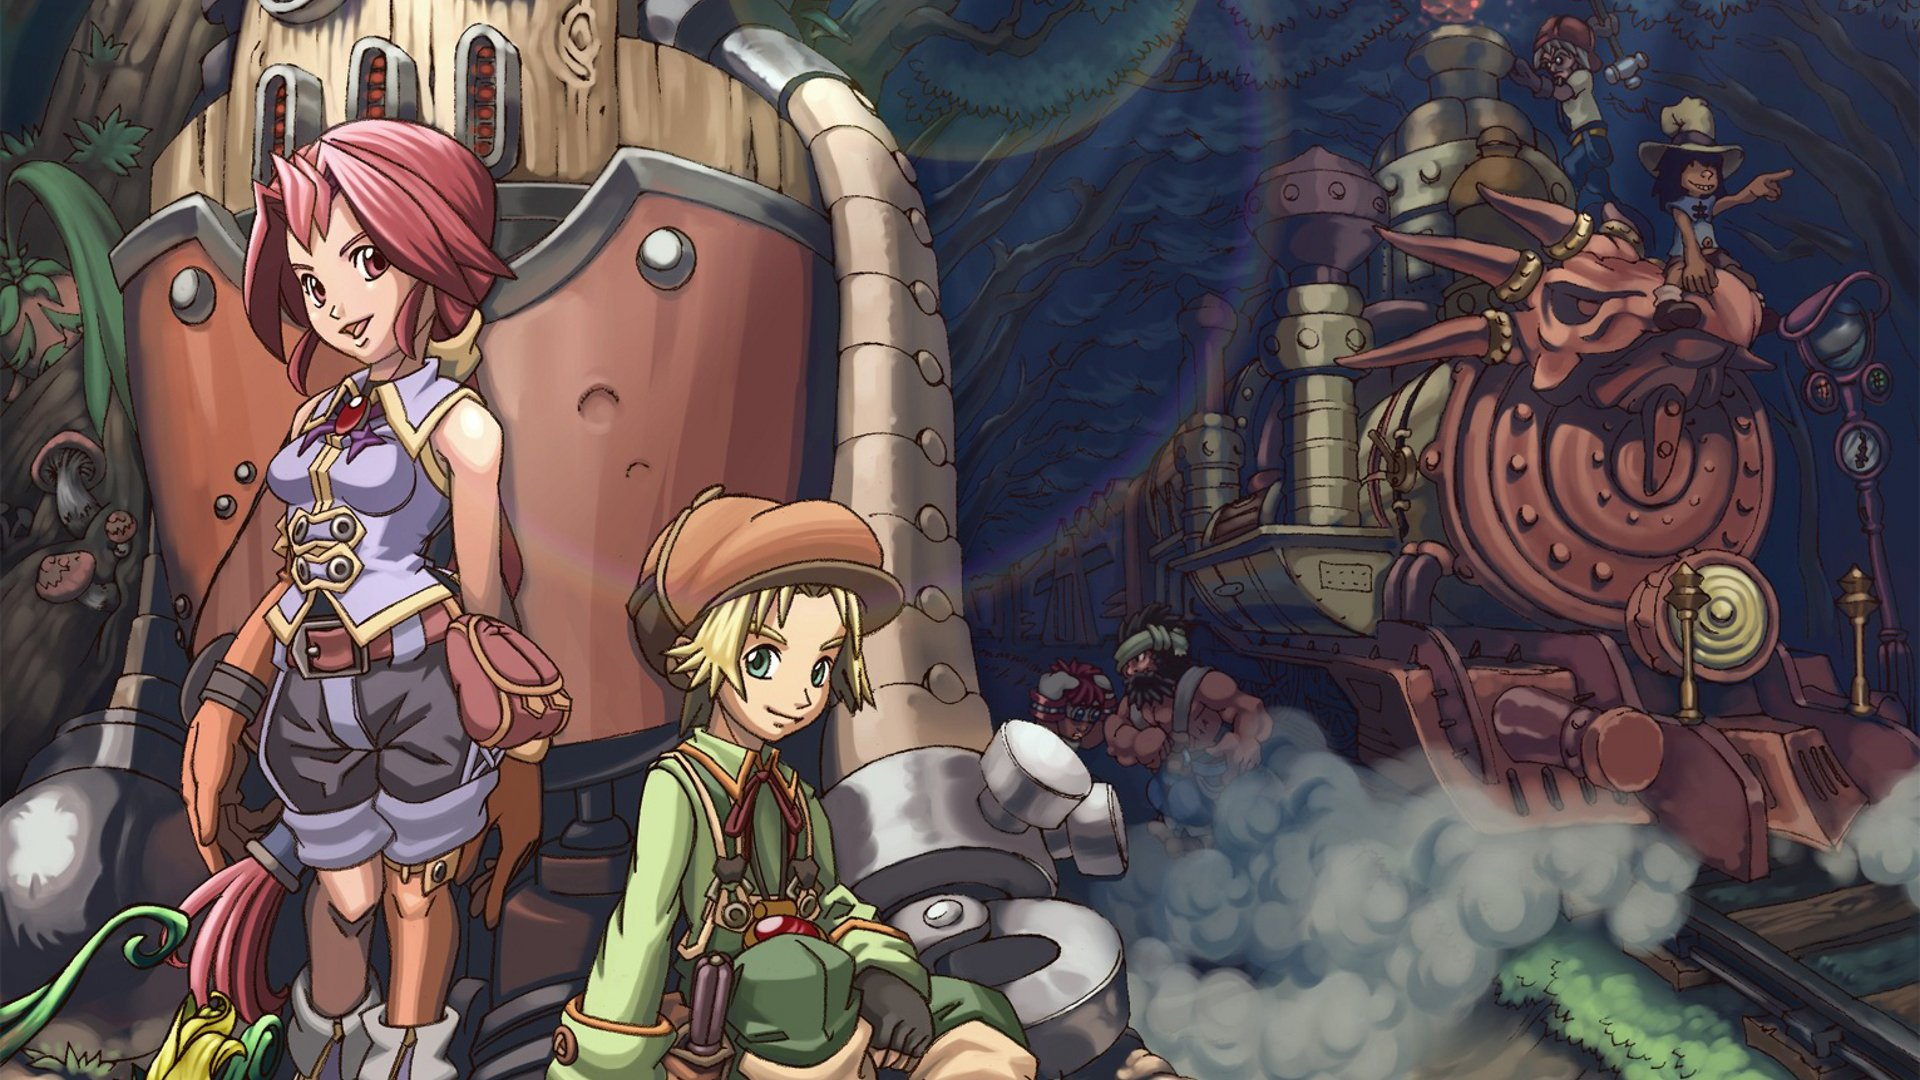 Dark Cloud 2 Hd Wallpaper